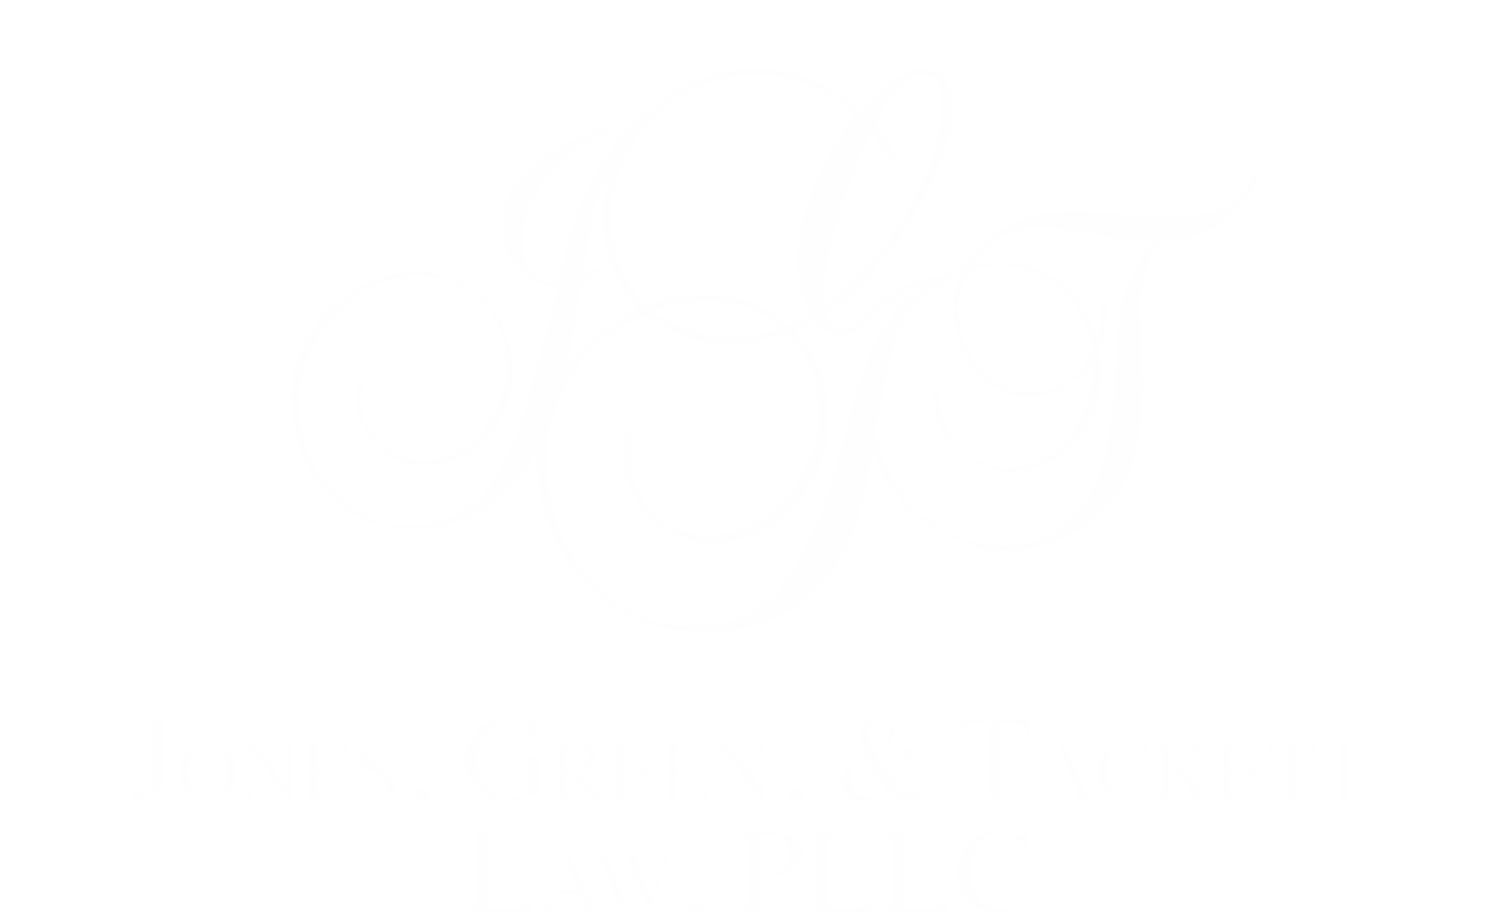 JONES, GREEN, & TACKETT LAW, PLLC